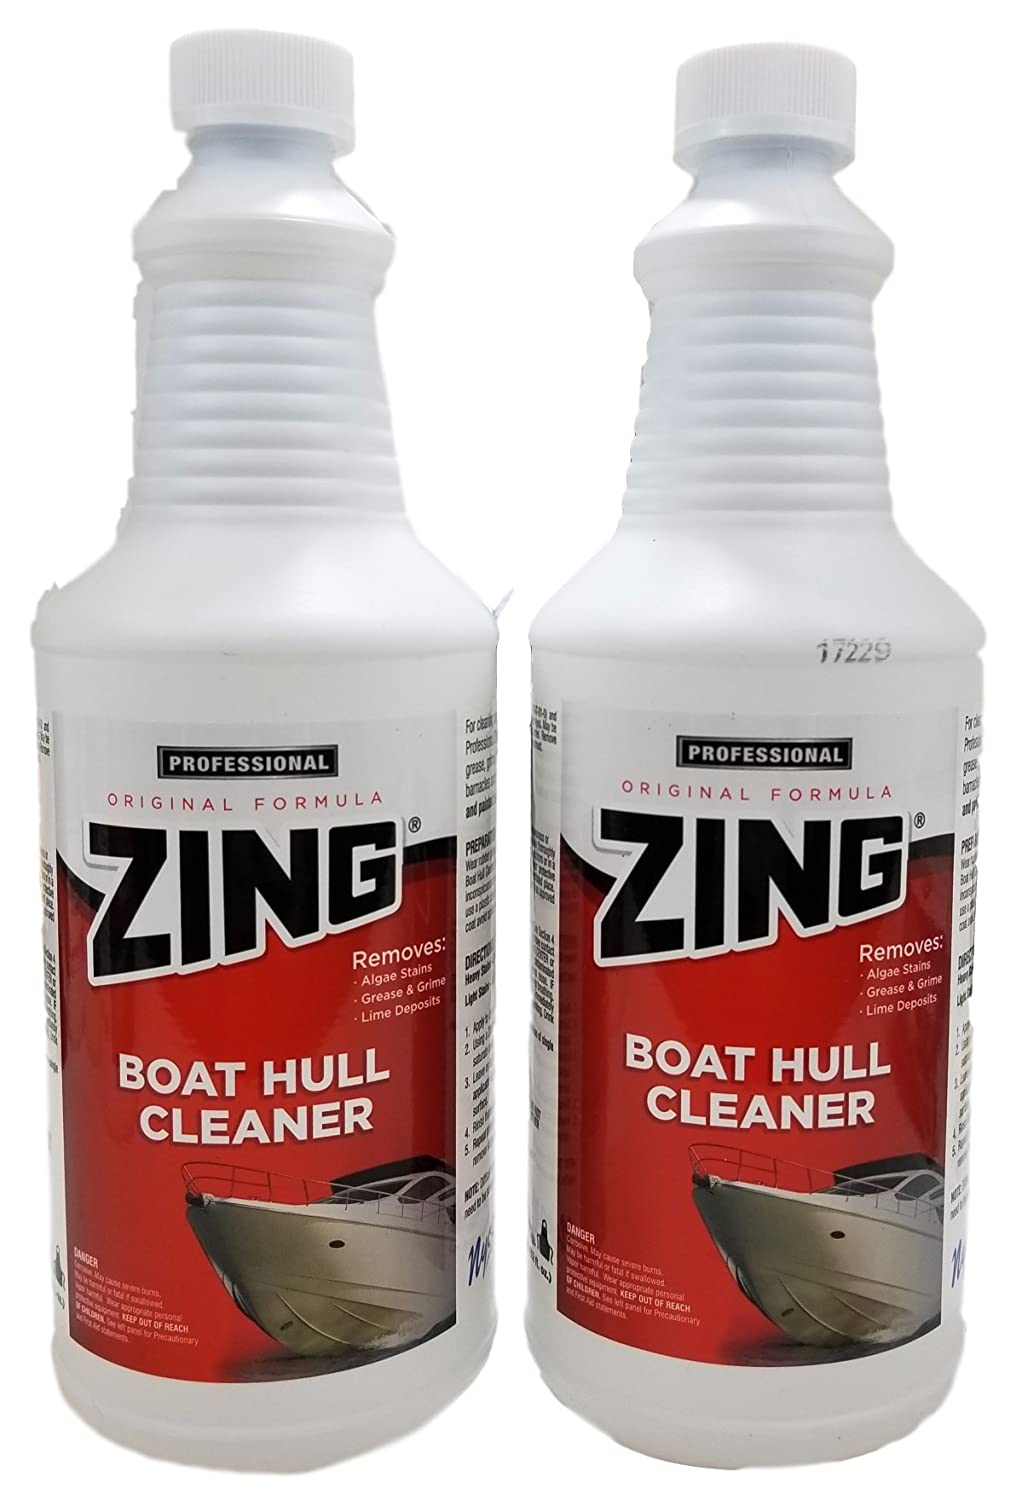 Amazon.com : Zing Boat Hull Cleaner - Original Formula For Removing ...